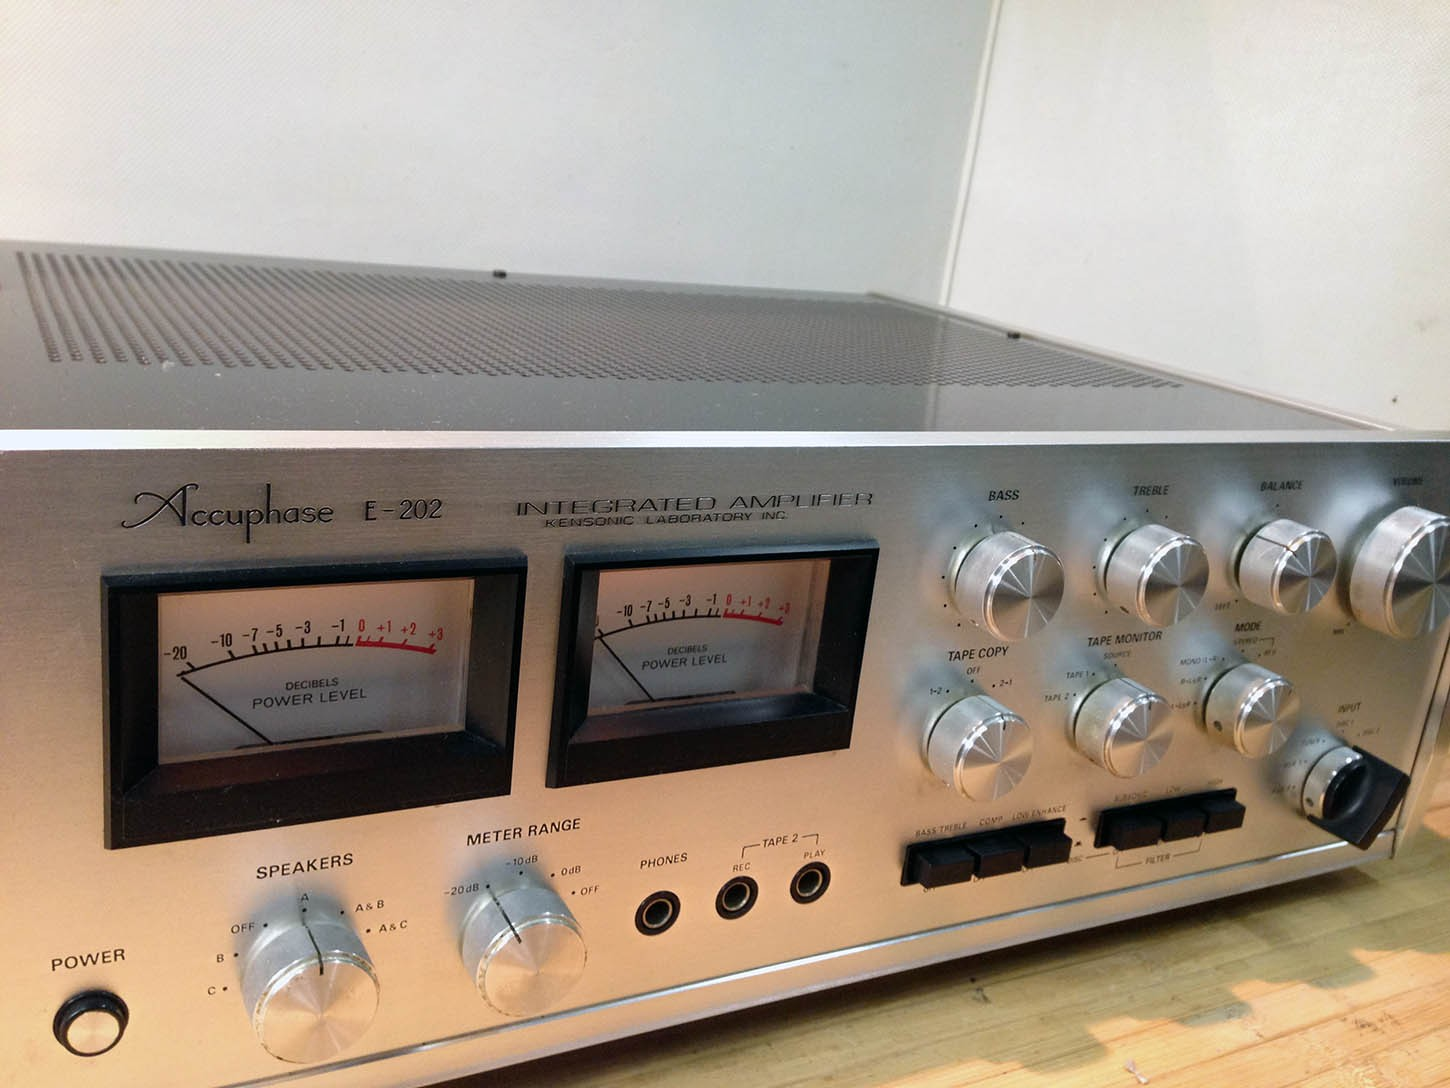 Accuphase e 202 фото